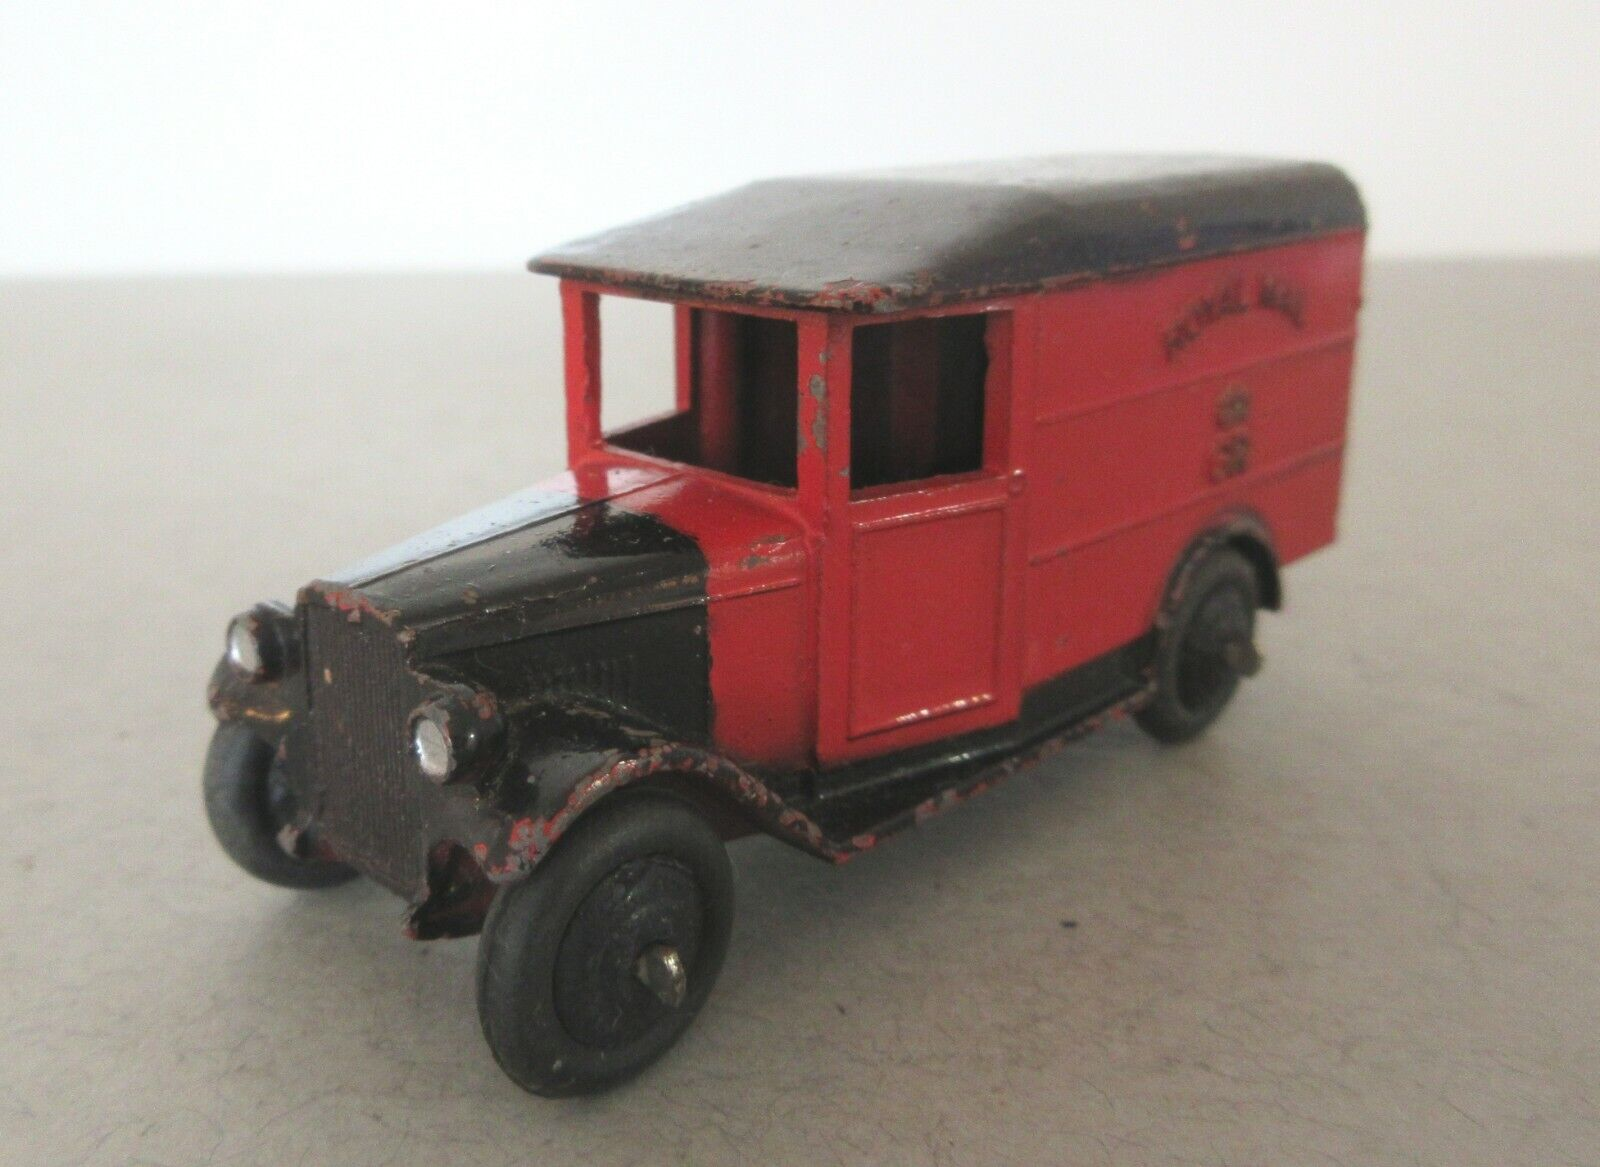 Dinky Toys 1930's Morris Royal Mail Van - Dinky Toys Commercial - Open Window